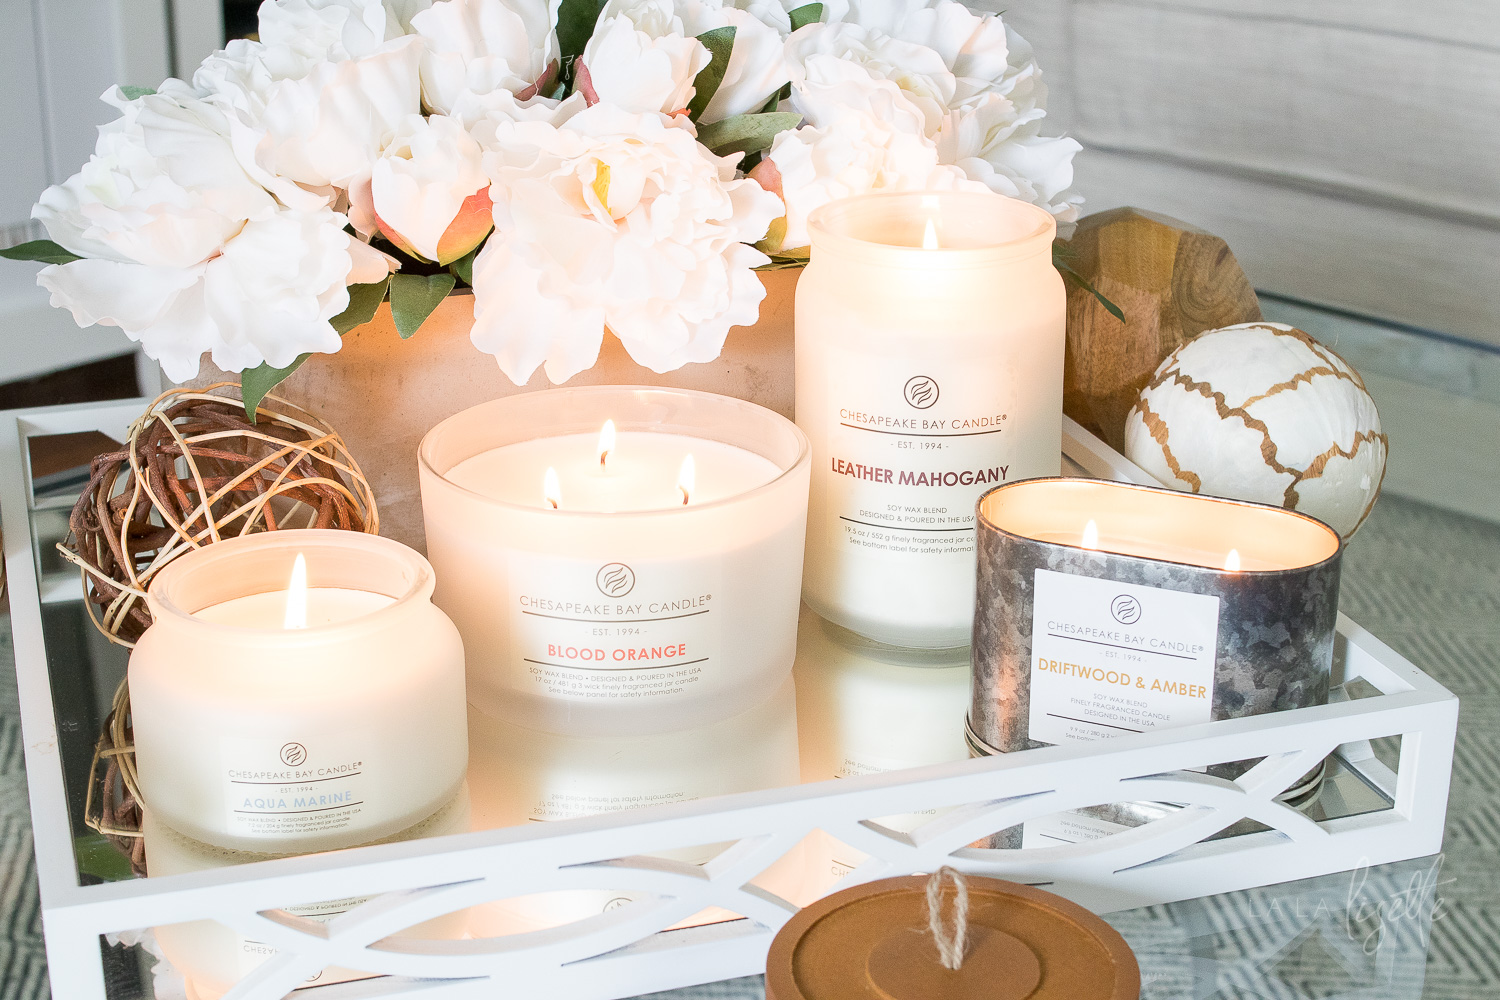 Chesapeake Bay Candle | The Heritage Collection